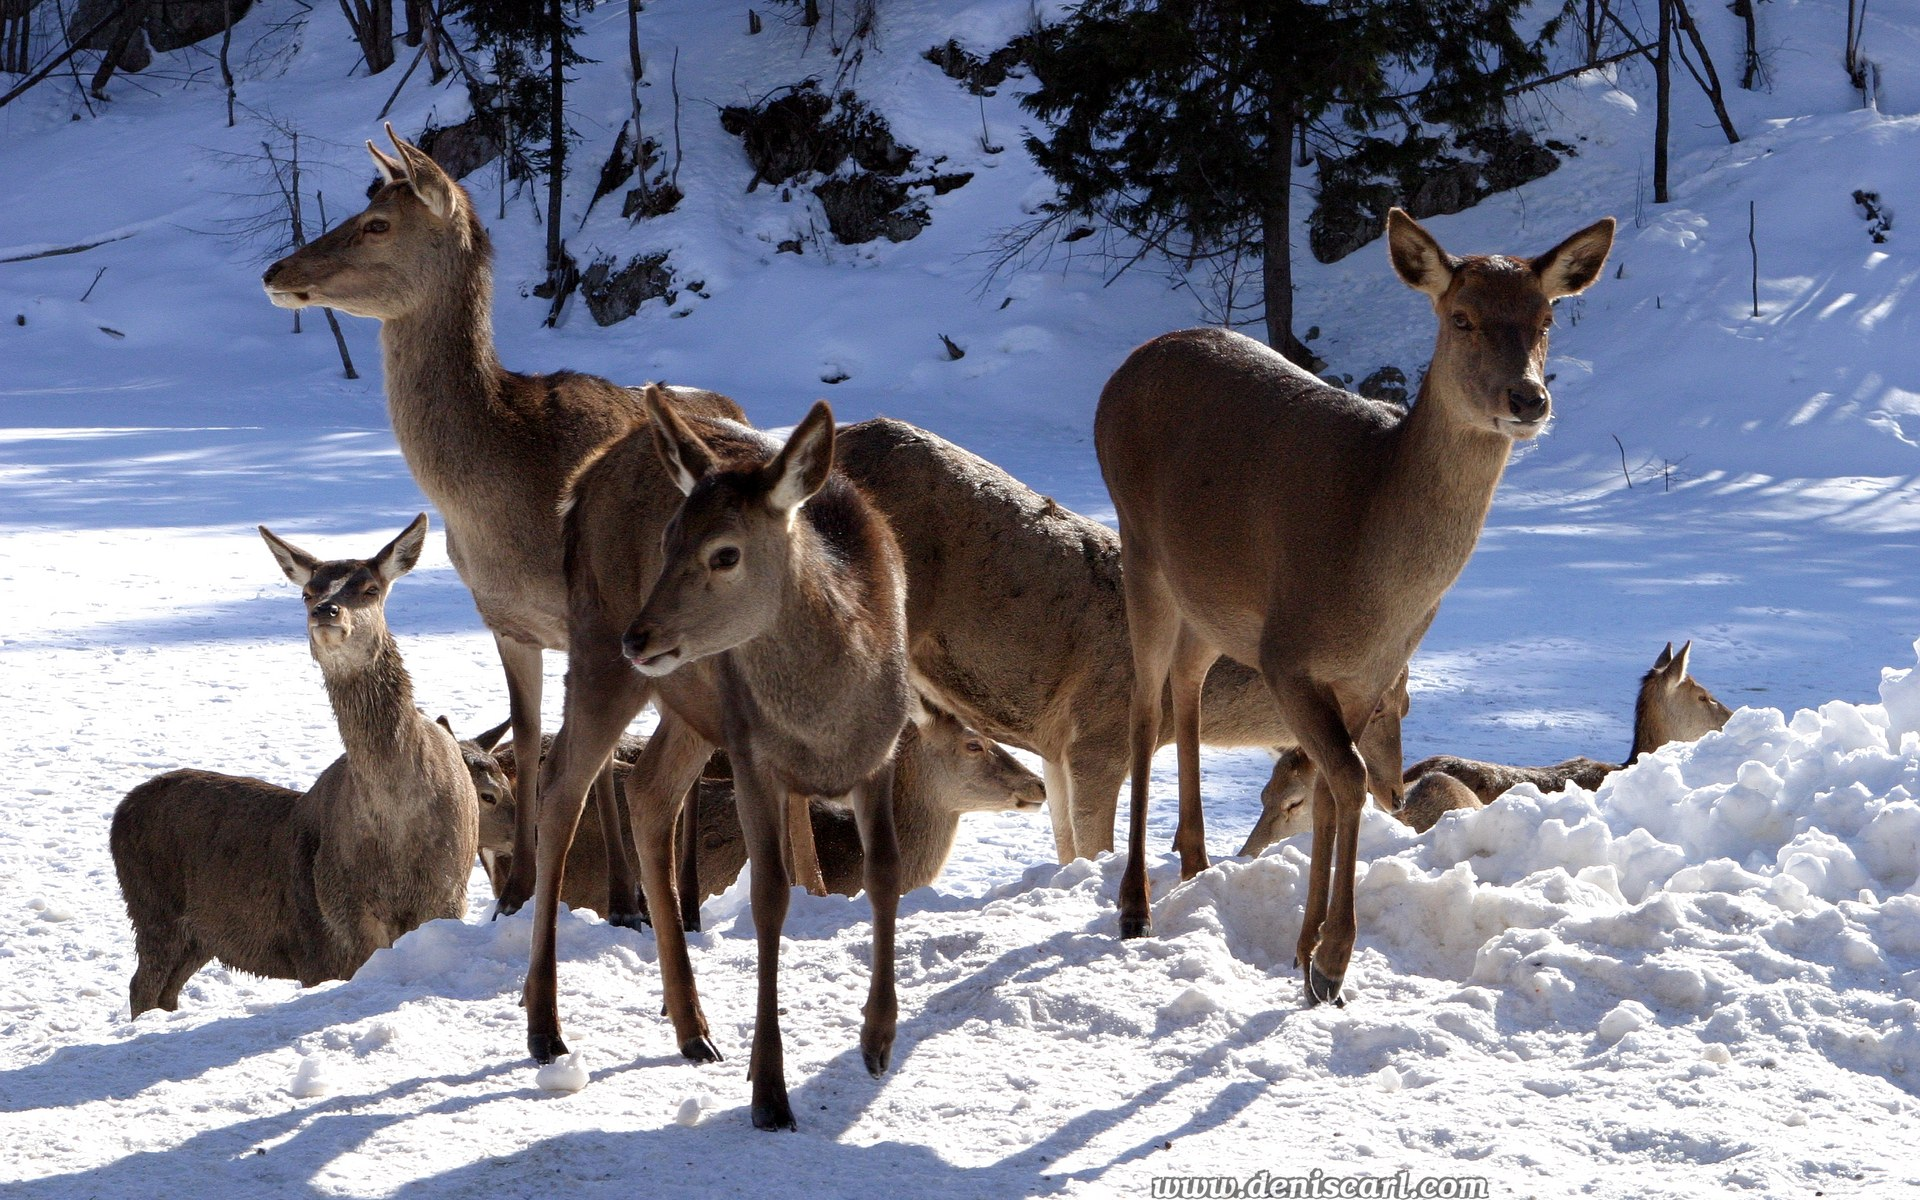 Deer-in-Snow_1920x1200.jpg